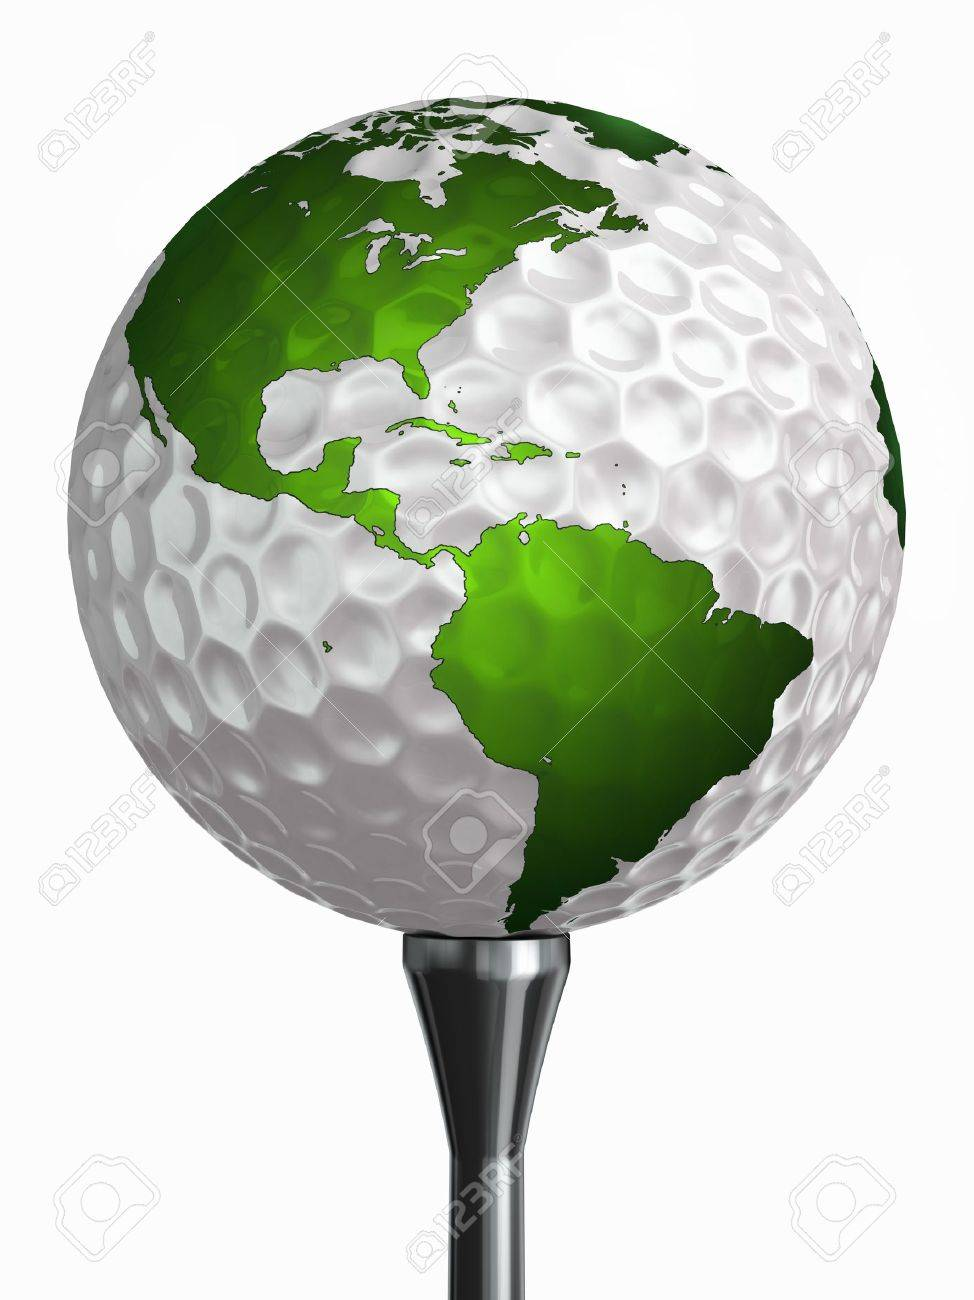 north and south america on golf ball and tee isolated on white backgound  clipping path included Stock Photo - 19022397